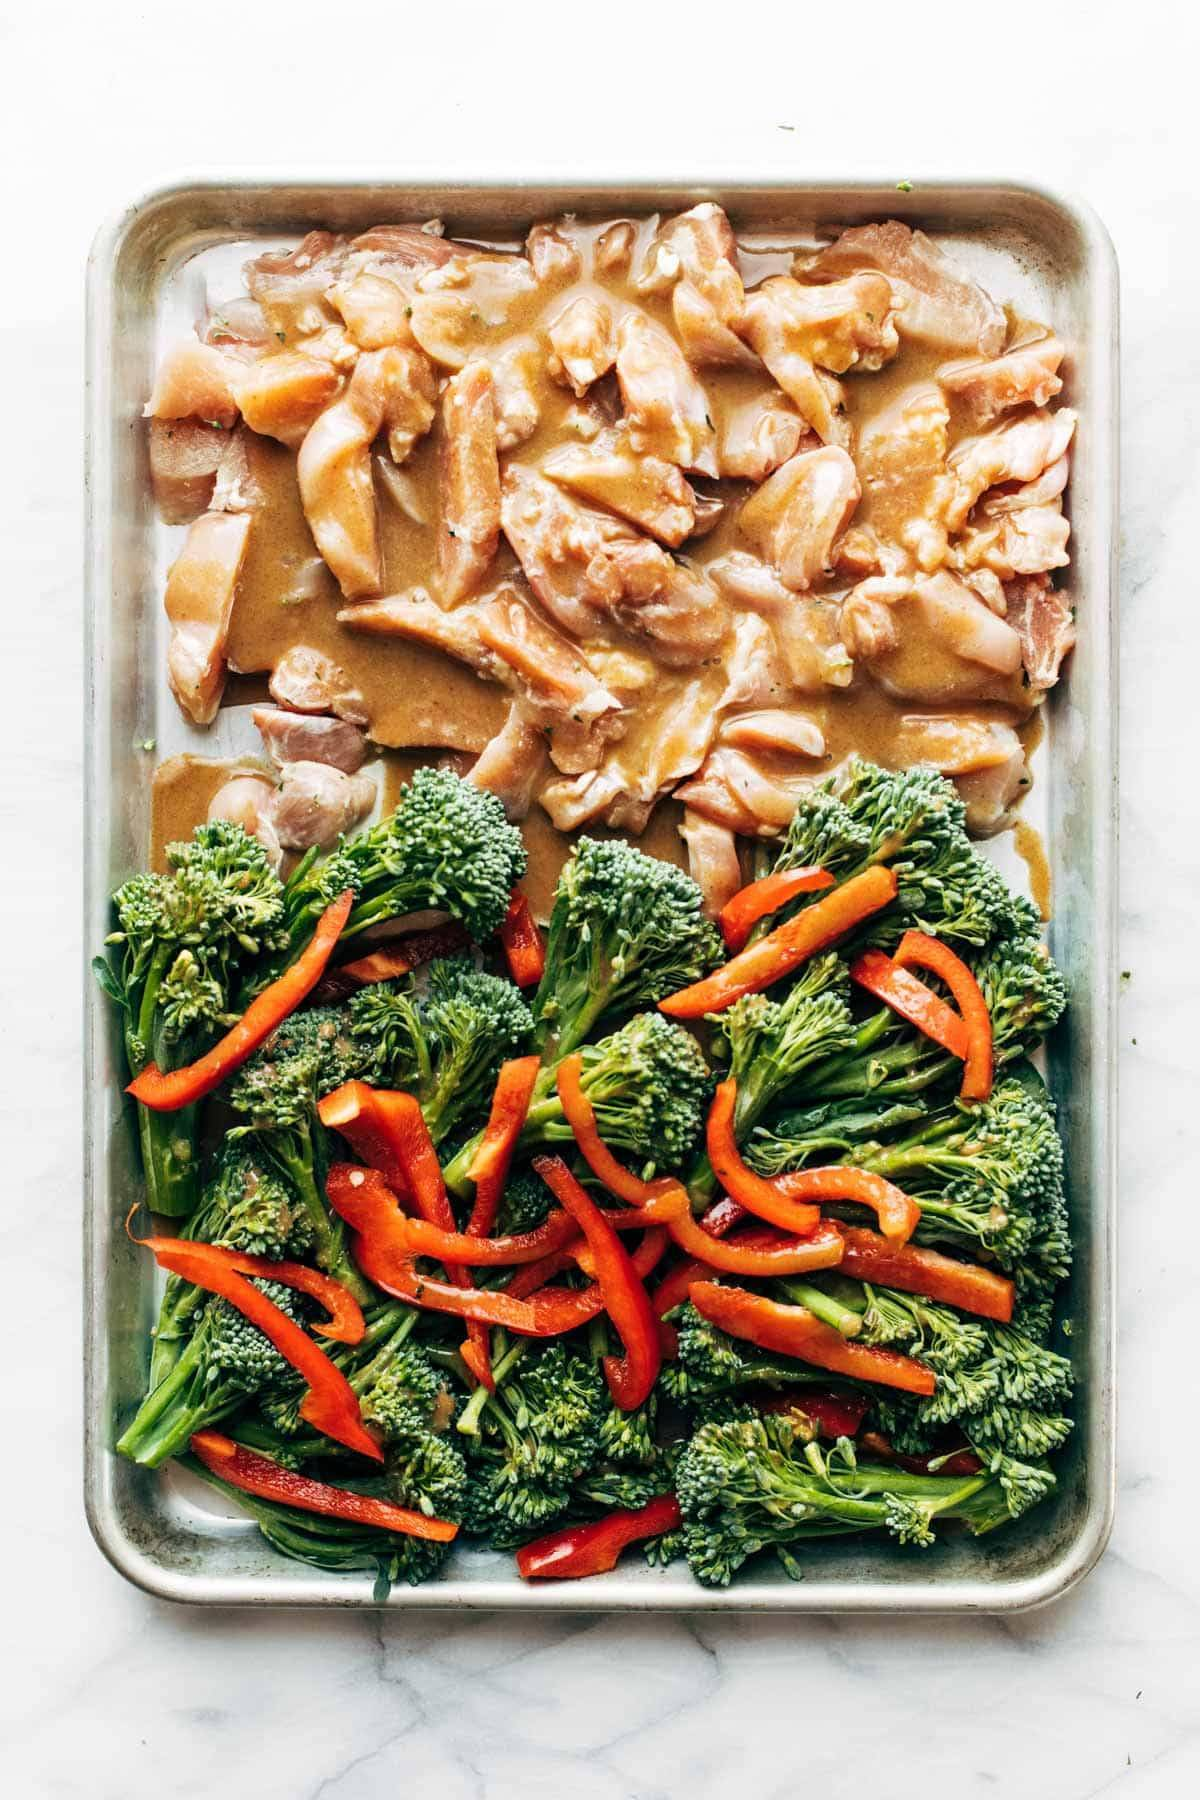 Garlic Ginger Chicken and Broccoli uncooked on sheet pan.